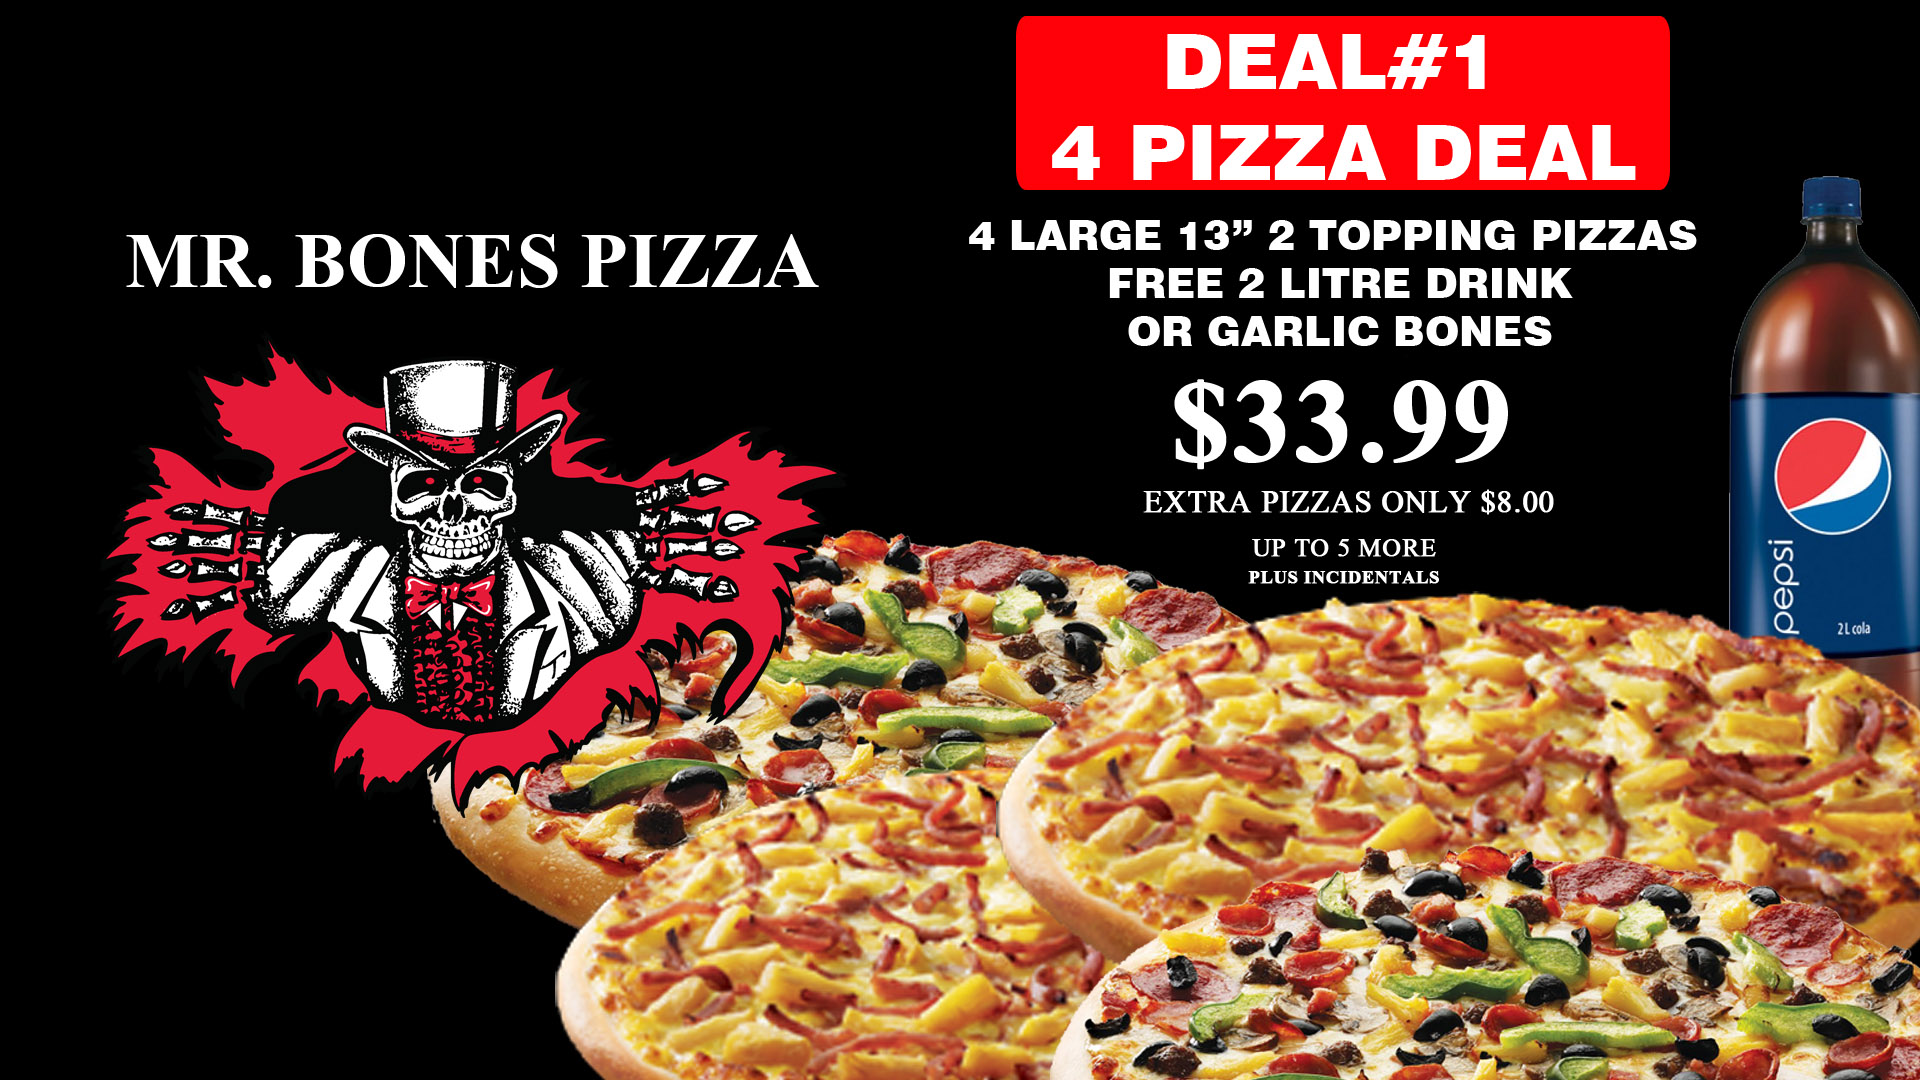 Pizza Deal #1